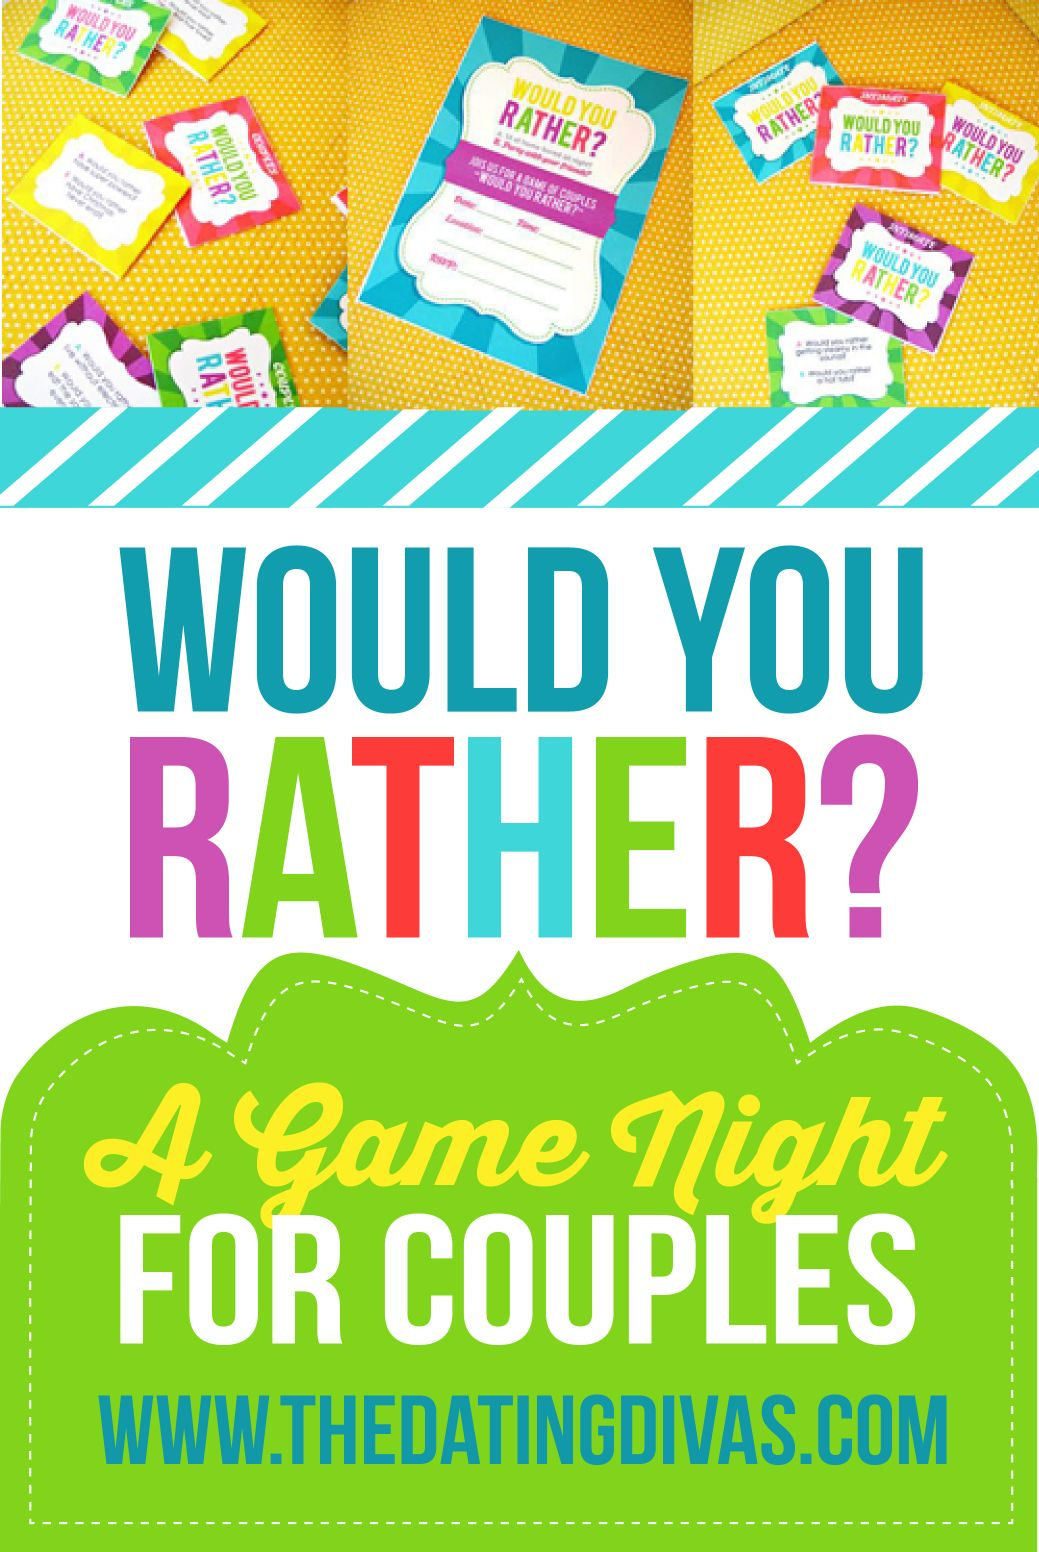 Couples Would You Rather I love, Couple and Would you